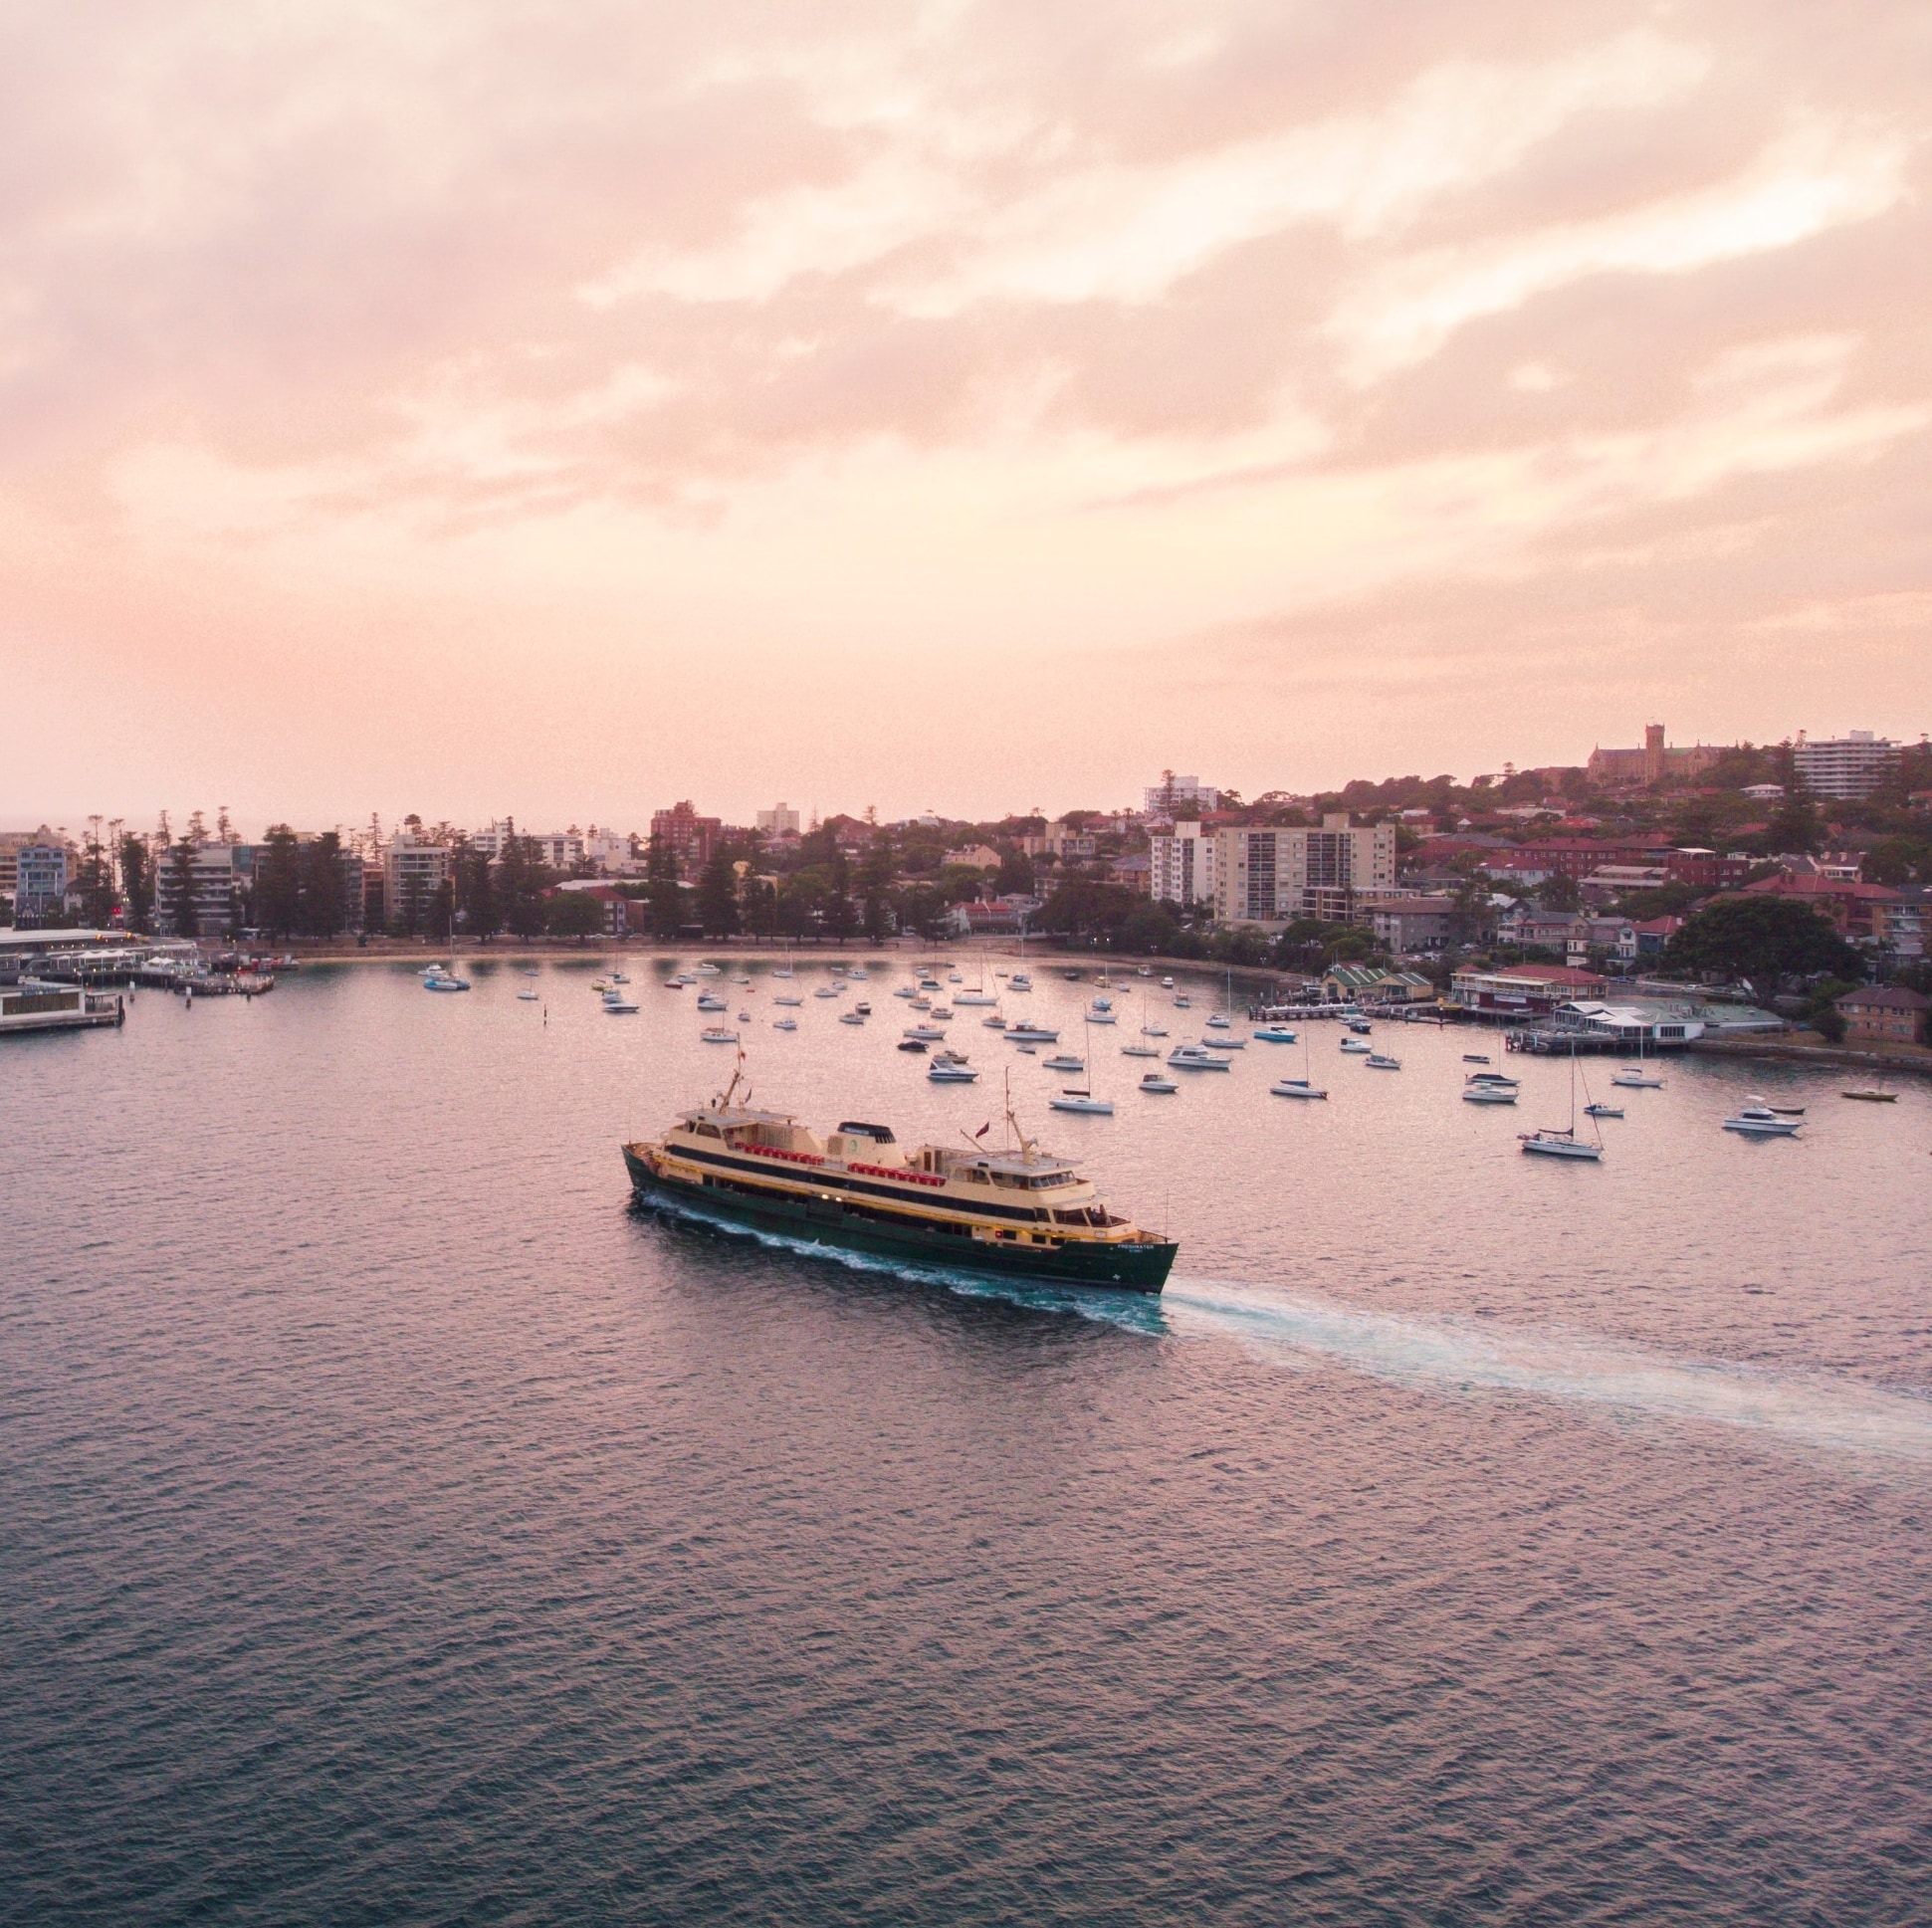 Manly Ferry, Manly, New South Wales © Destination NSW